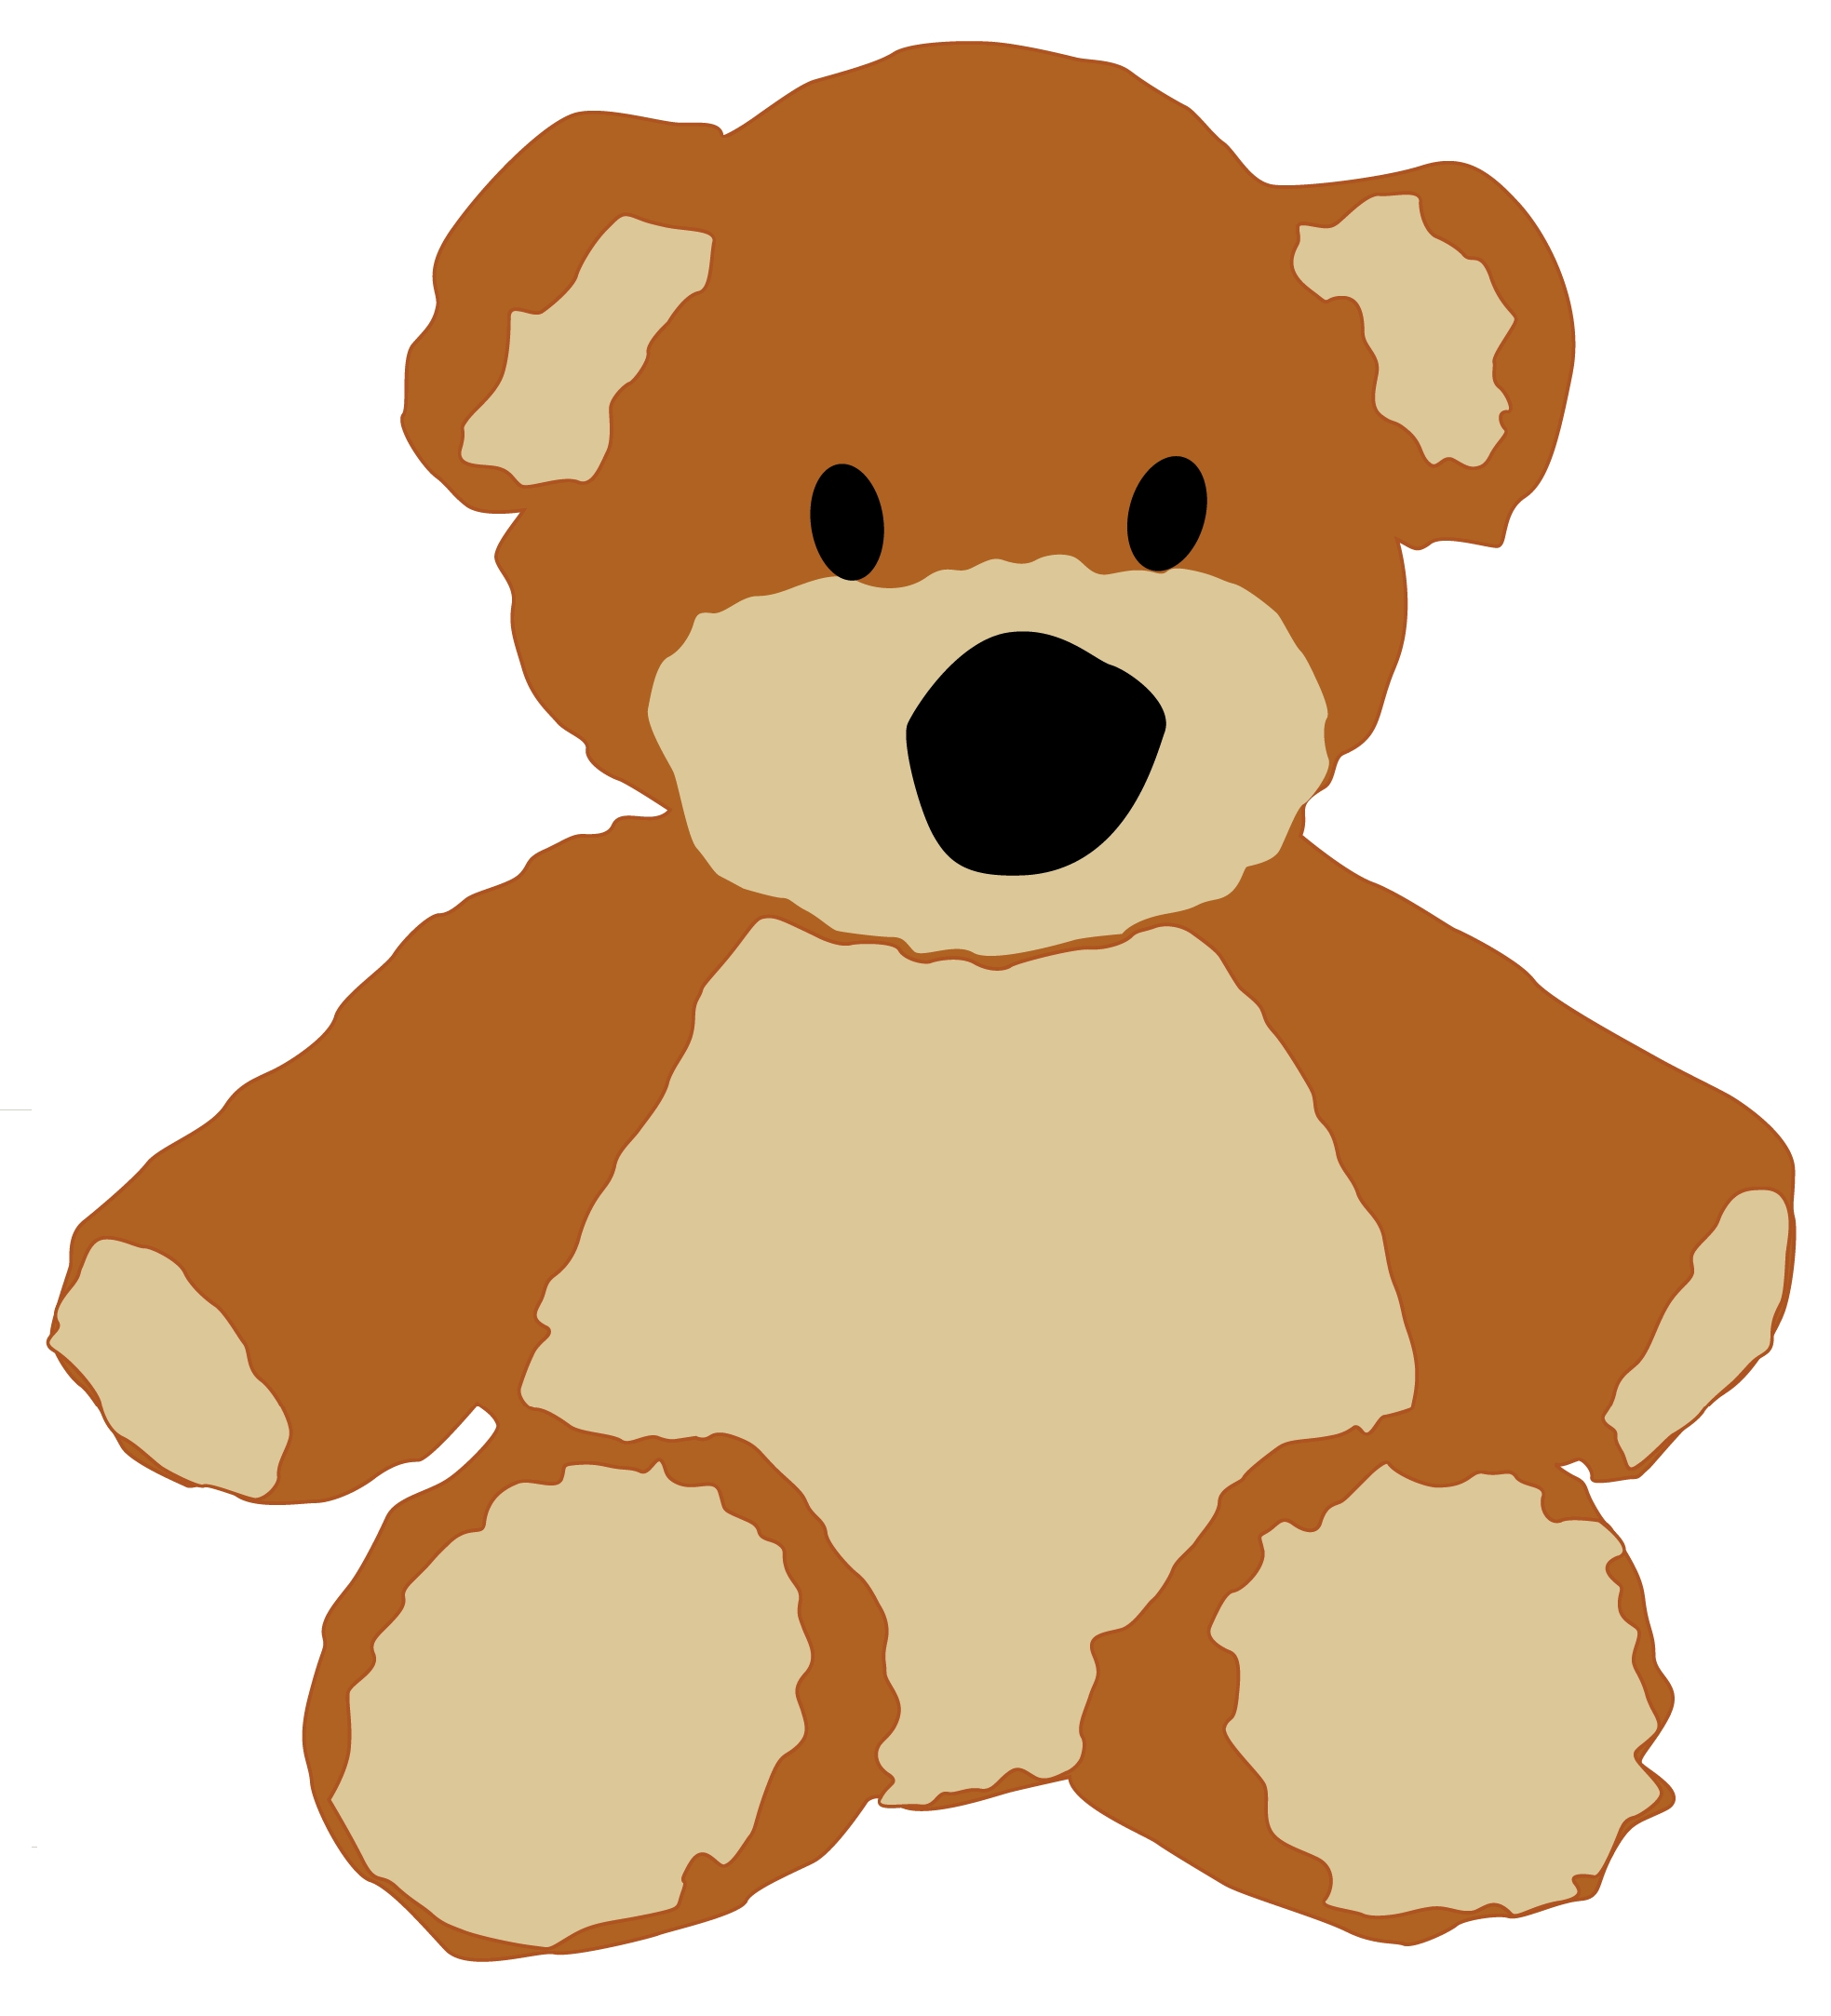 Teddy Free Images At Clker Com Vector Cl-Teddy Free Images At Clker Com Vector Clip Art Online Royalty-19